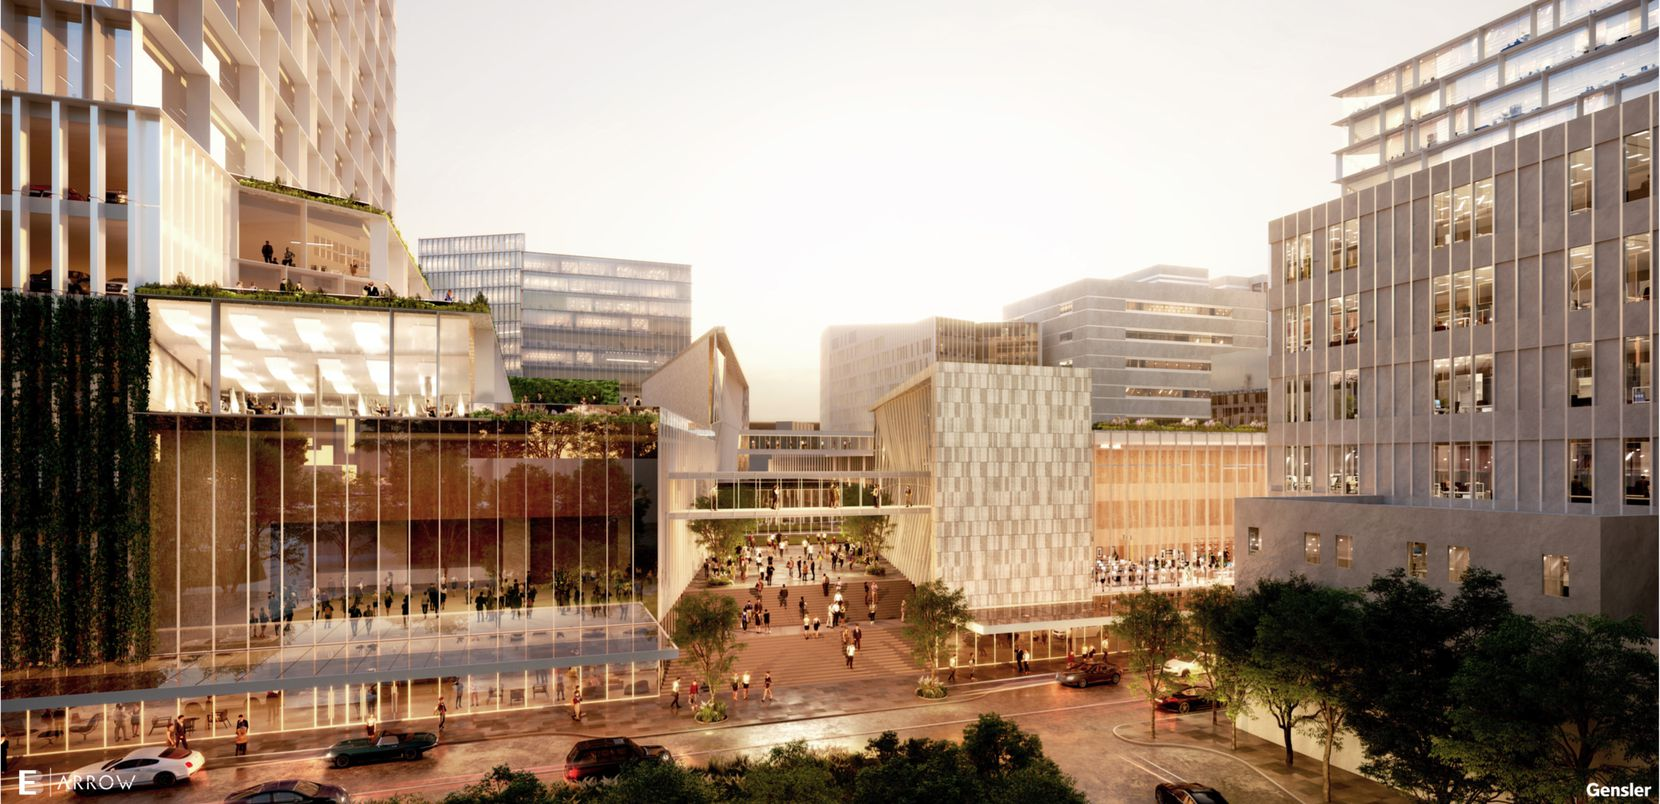 Architect Gensler designed the new development with a mix of buildings.